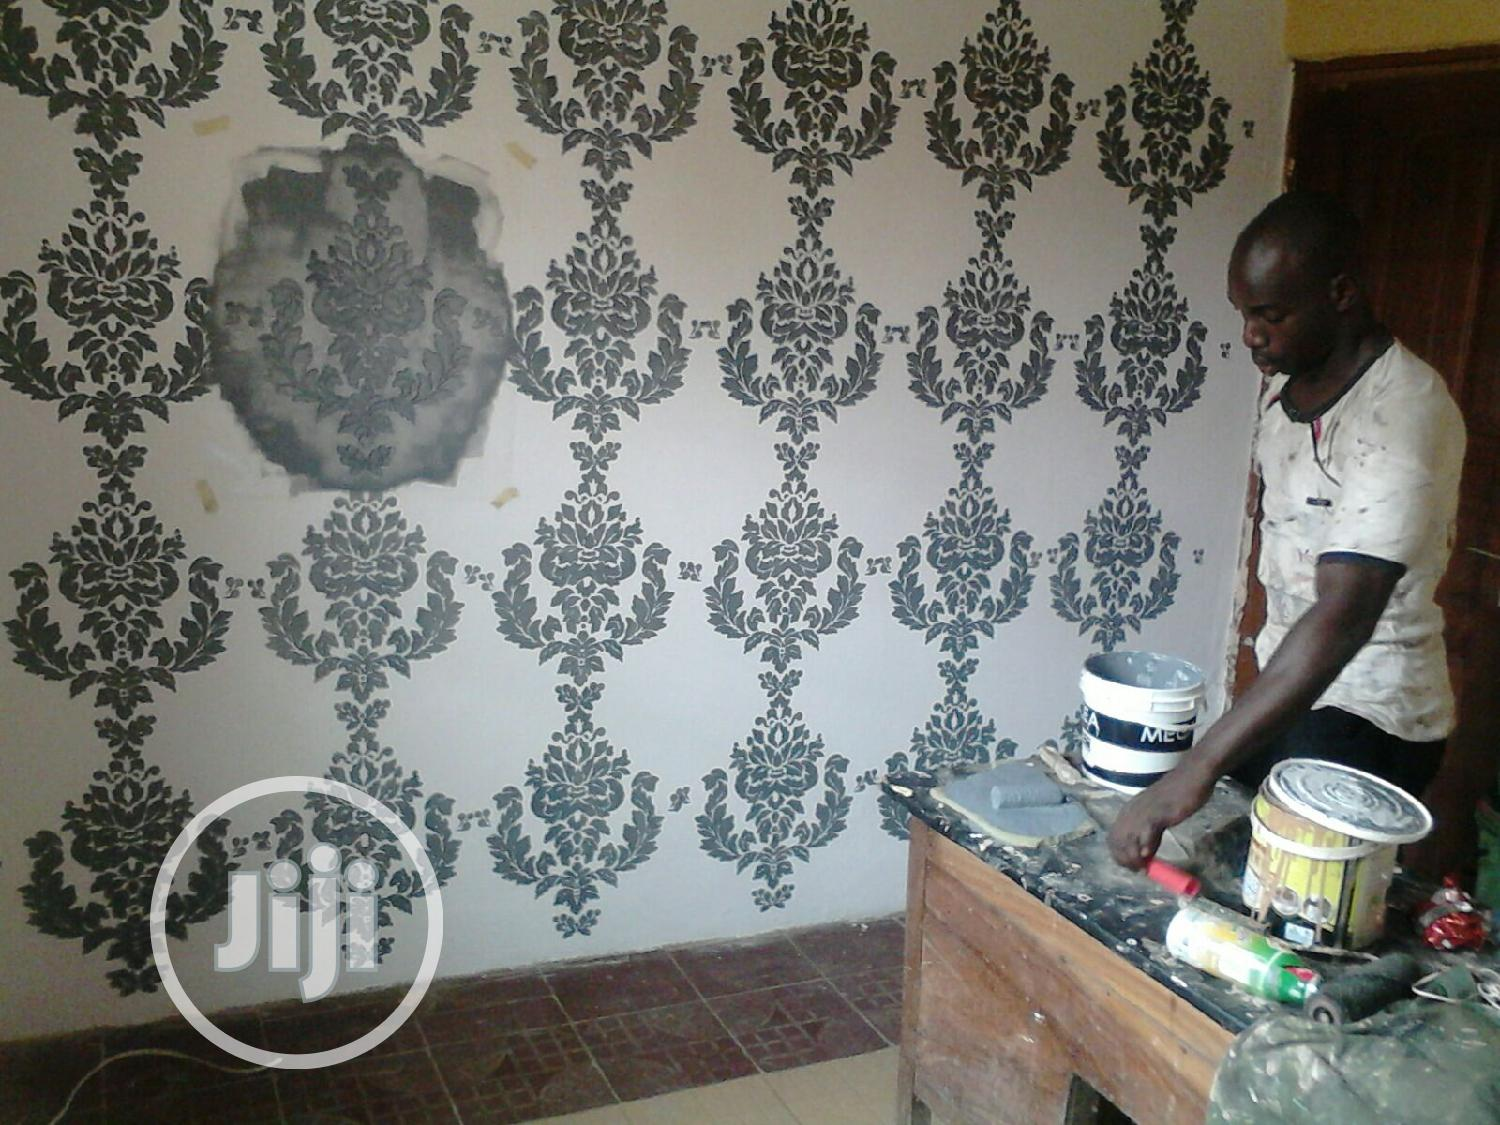 Archive: Msd Painters and Interior Decorators